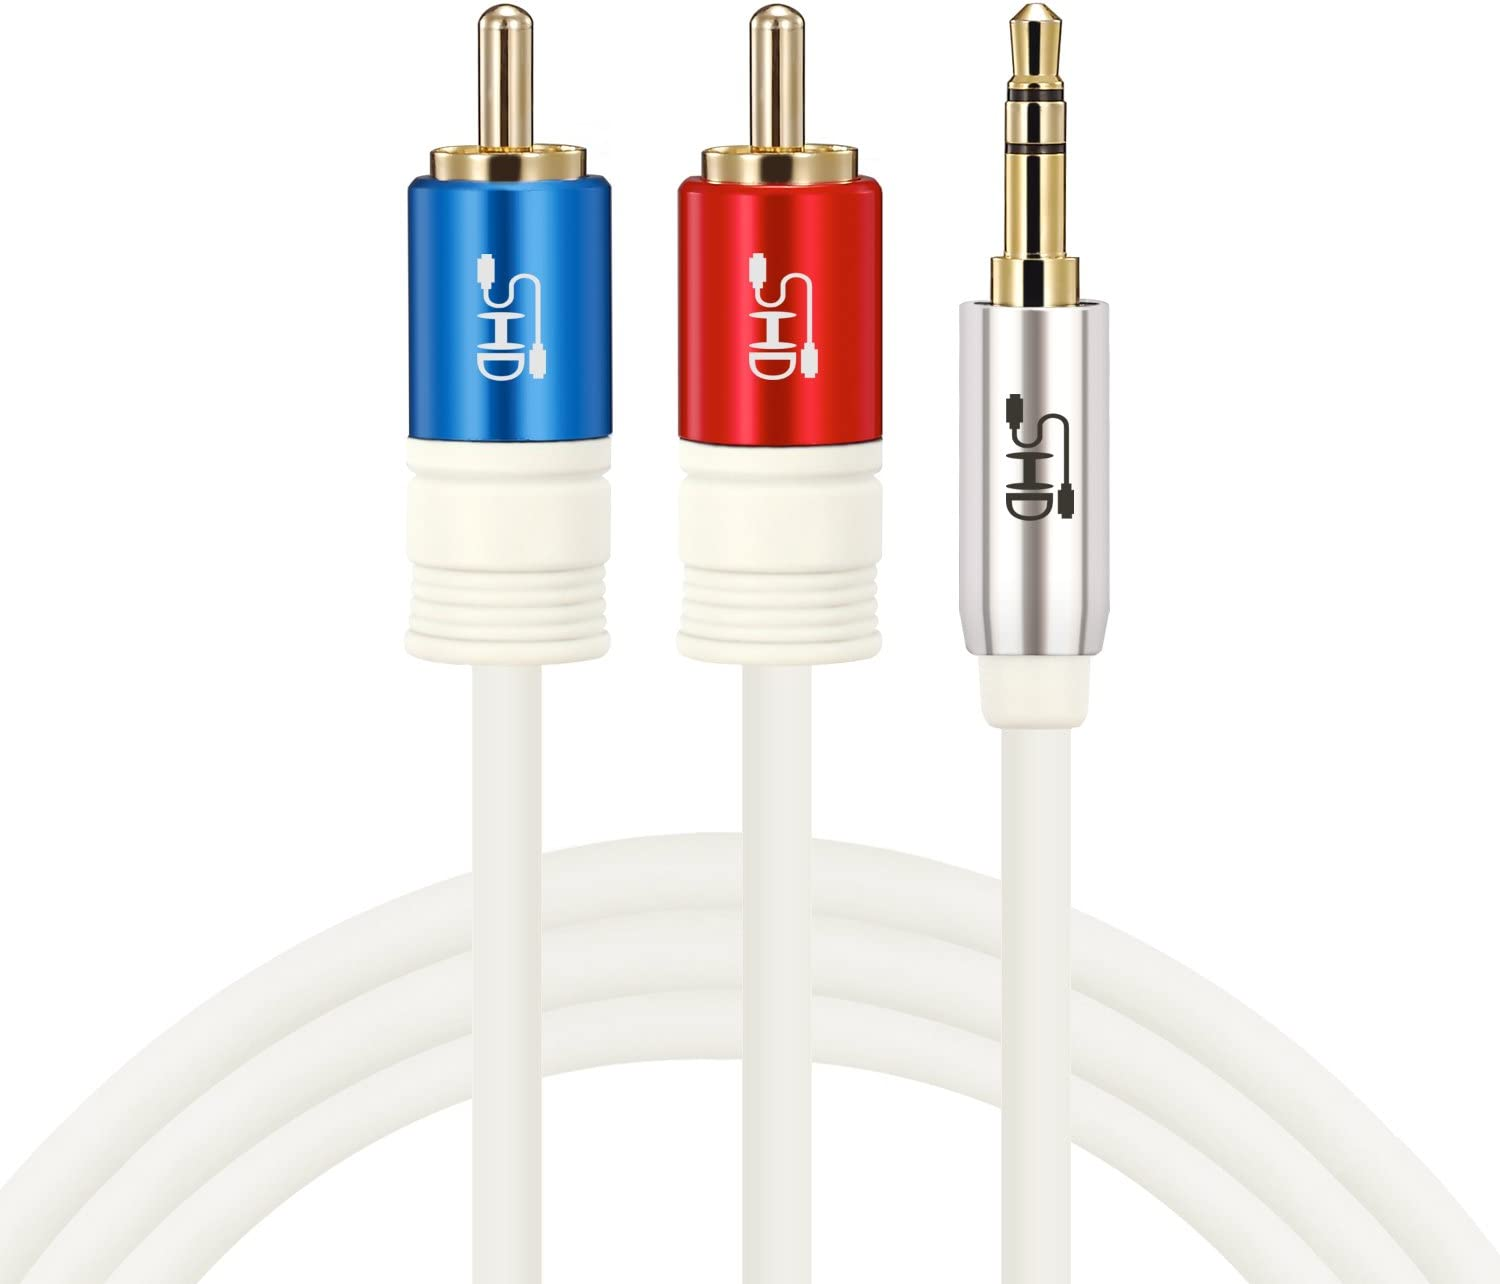 SHD 3.5mm Aux to 2RCA Y Splitter Stereo Audio Cable Male Type OFC Conductor High Flexible PVC Jacket Dual Shielding Gold Plated High End Metal Shell-Black 25Feet//7.6m